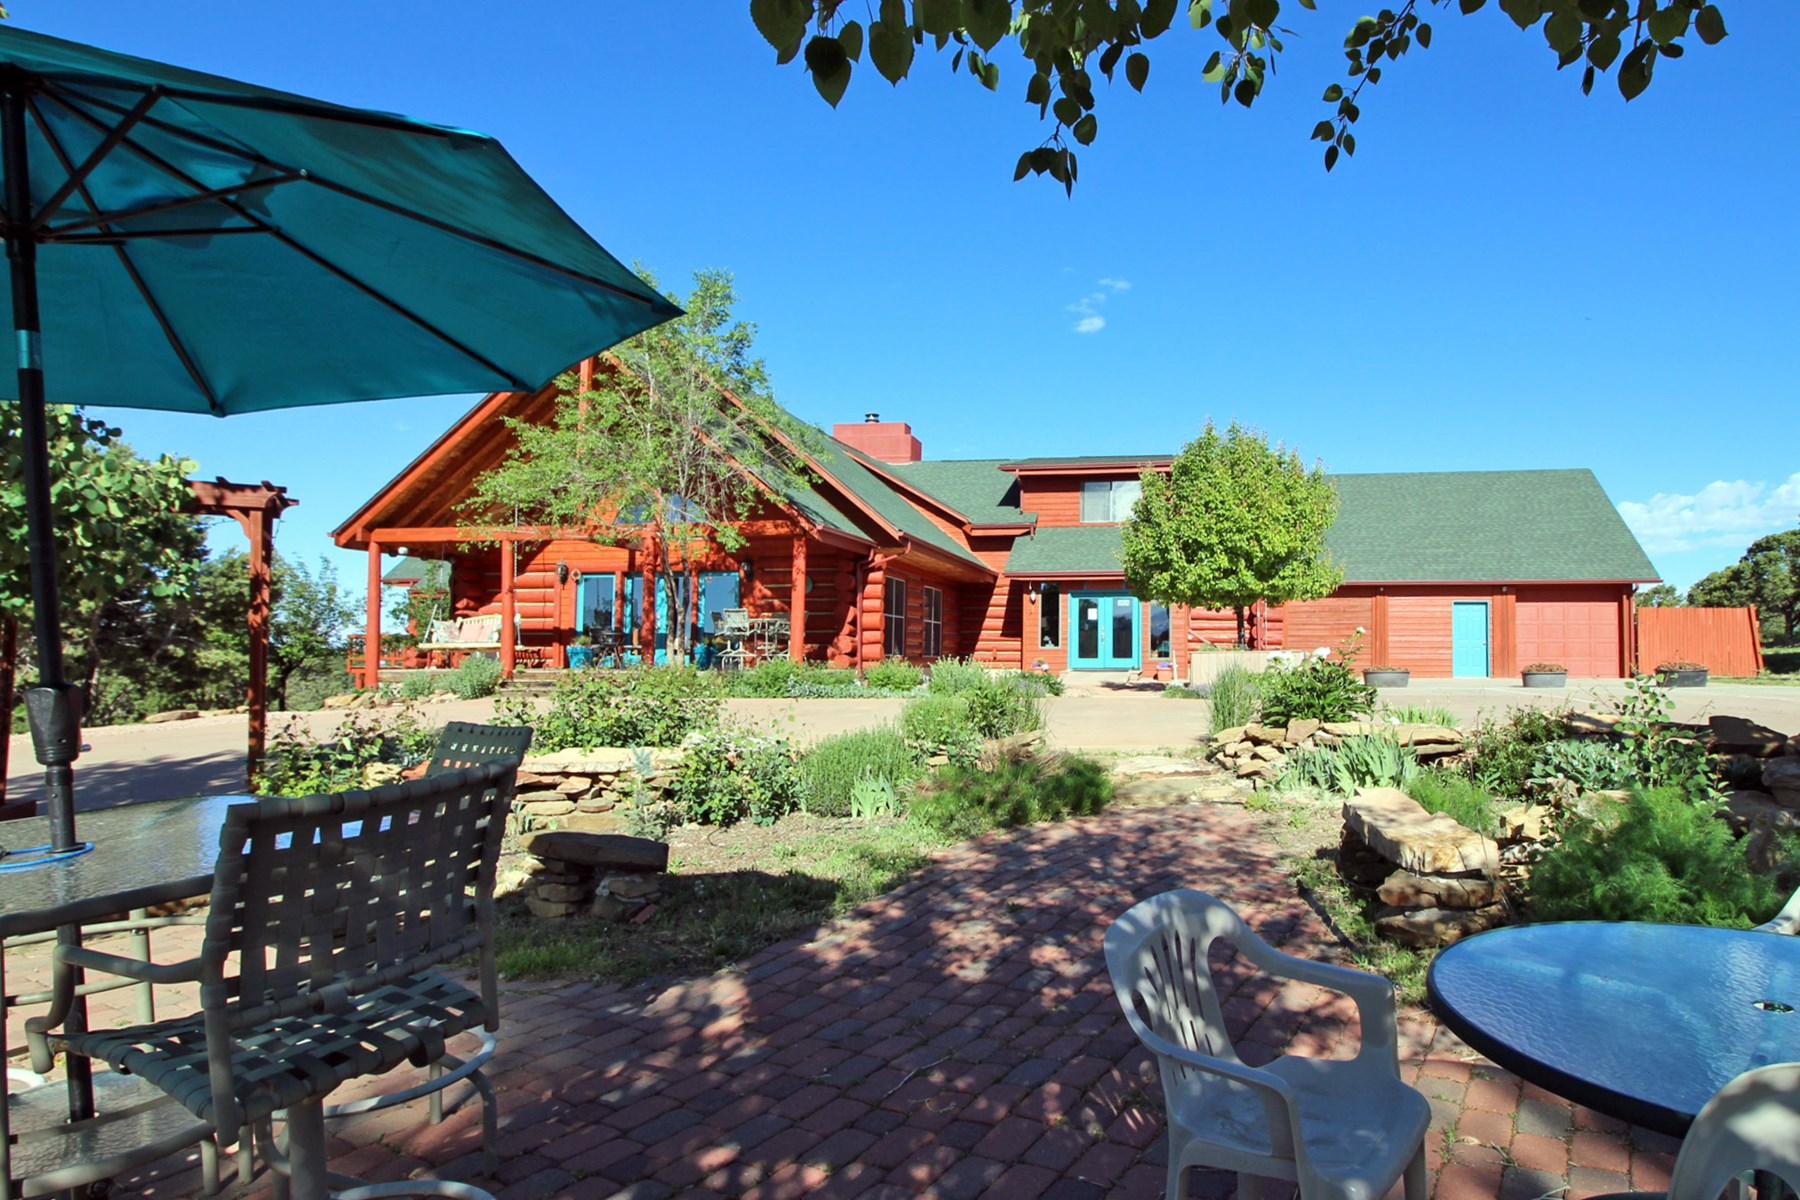 Horse property or lodge facility on 29 acres in SW Colorado